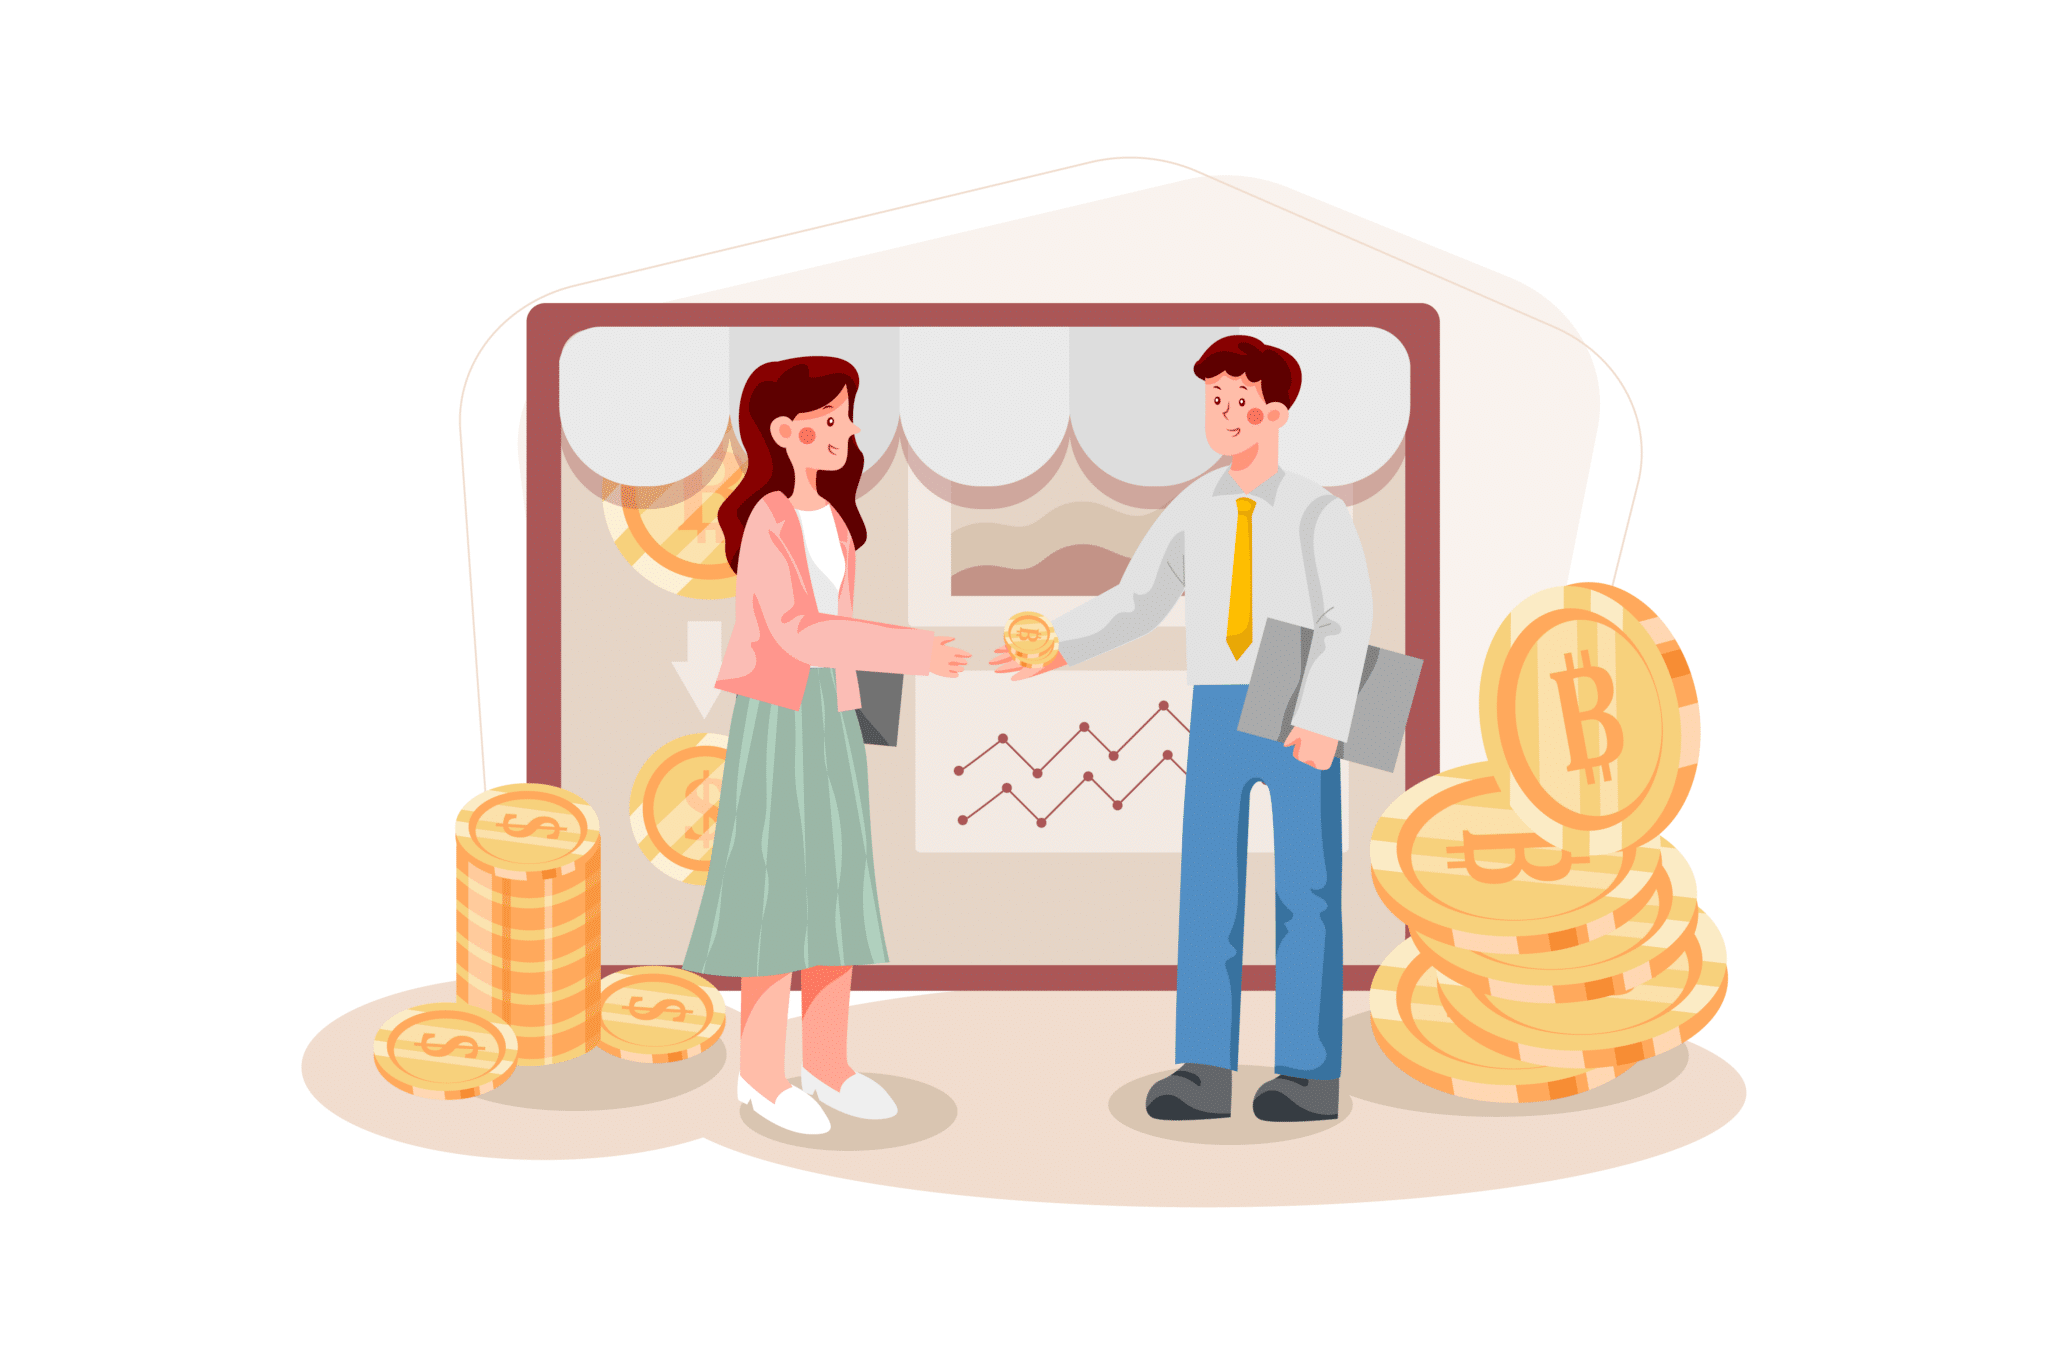 Graphic of woman shaking man's hand with money around them